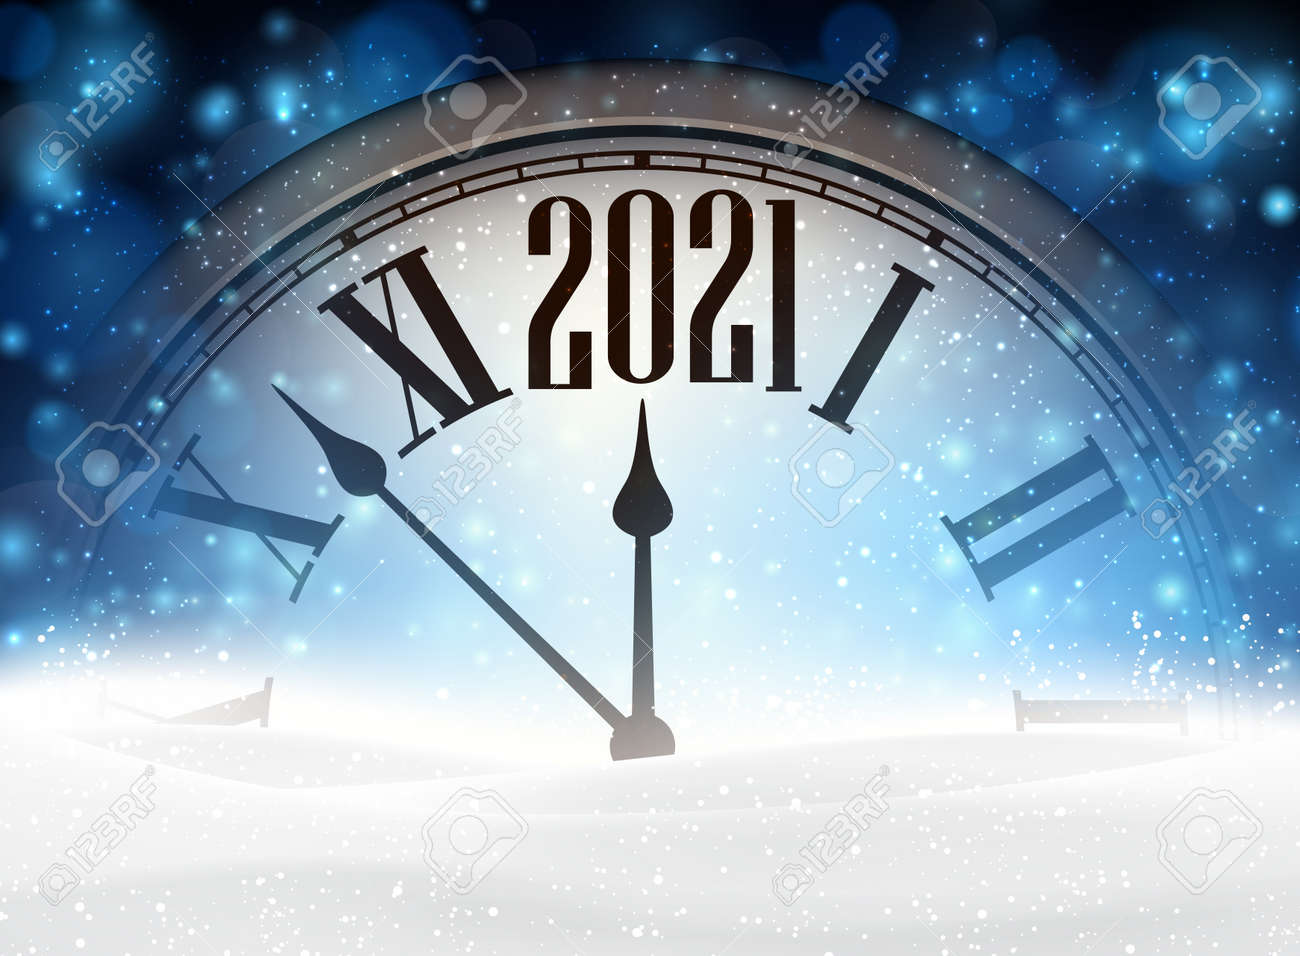 Clock hands showing 2021 year instead of twelve o'clock. Creative clock with shiny lights on blue background. Snowdrift hiding a half of clock. Vector holiday illustration. - 157265584